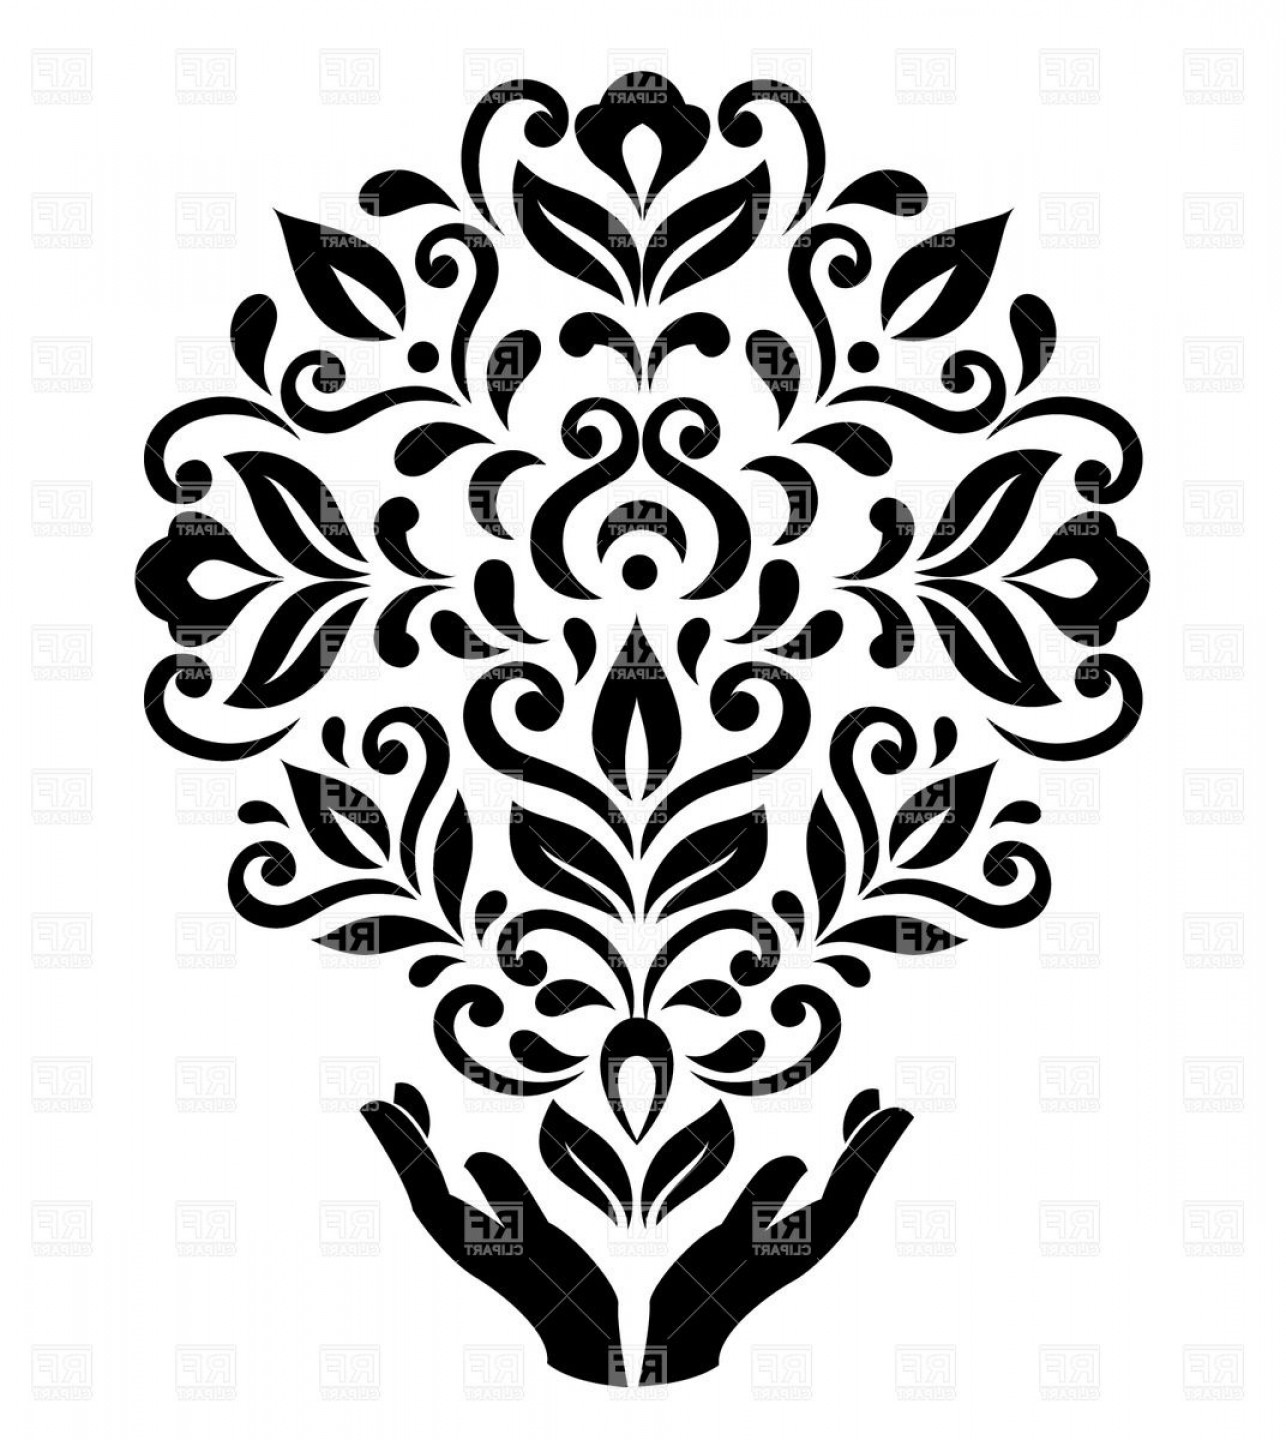 Floral Vector Illustration: Stylized Hands Holding Round Floral Ornament Vector Clipart